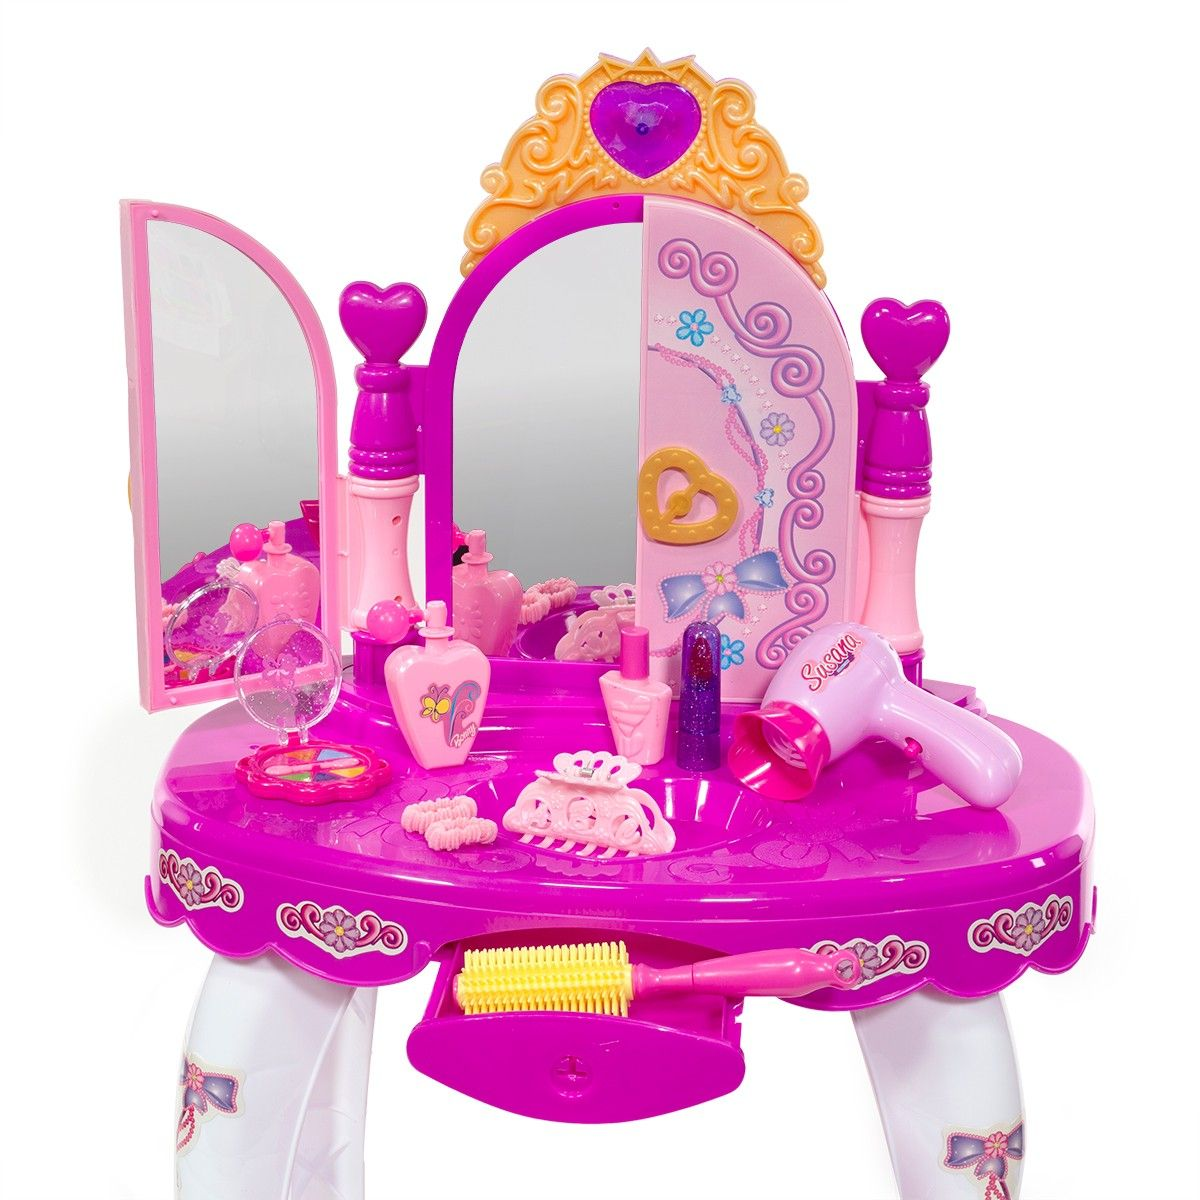 Ihubdeal Little Princess Lights And Sound Makeup Vanity Table 9 Piece With Stool Pretend Makeup And Hair Accessories Gift Walmart Com Kids Makeup Vanity Pretend Makeup Makeup Vanity